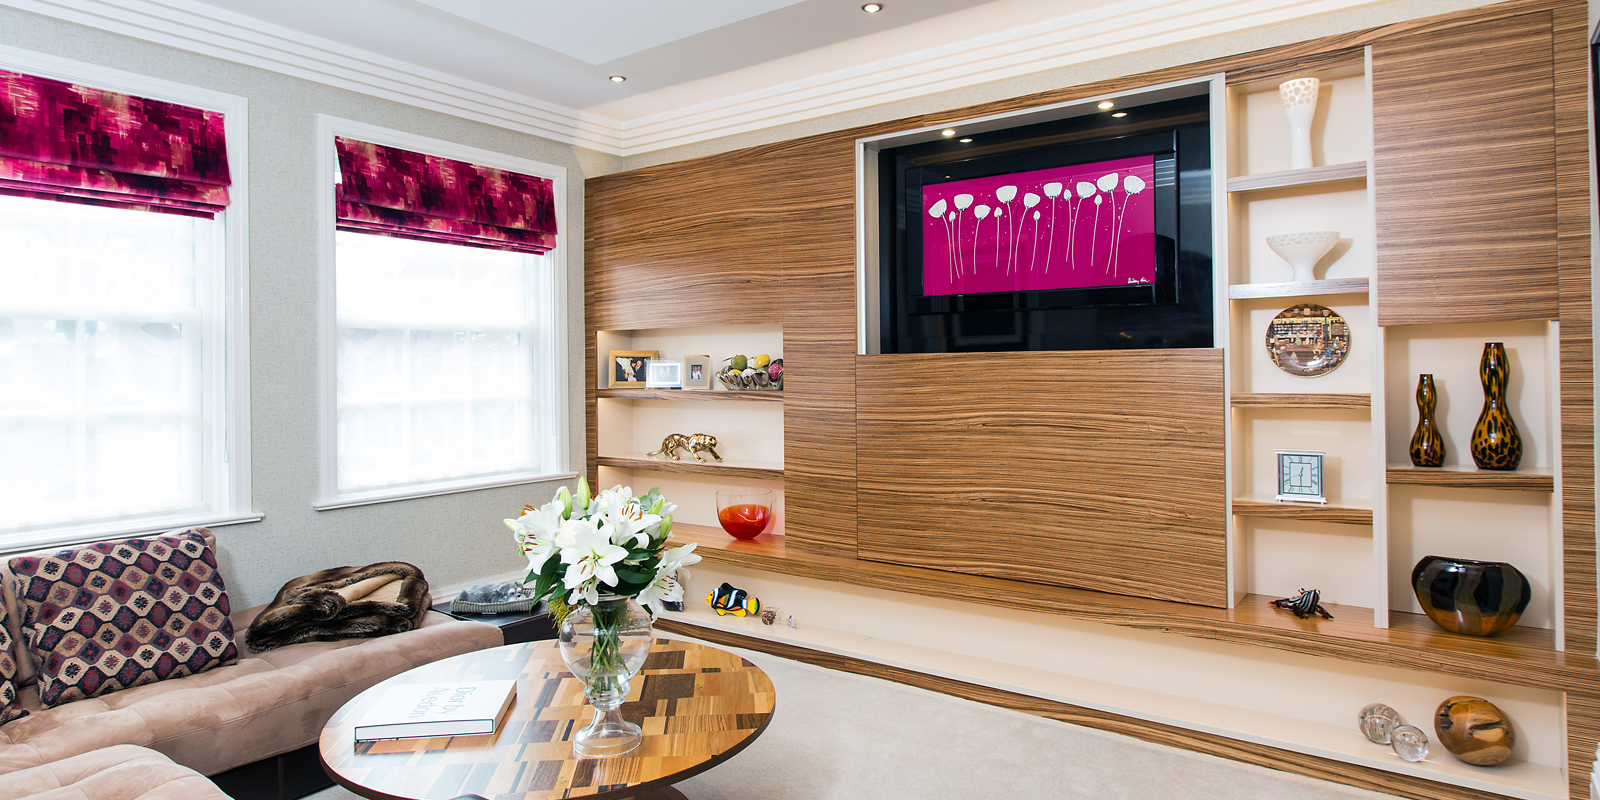 Full wall media unit in zebrano wood with a built in display shelves